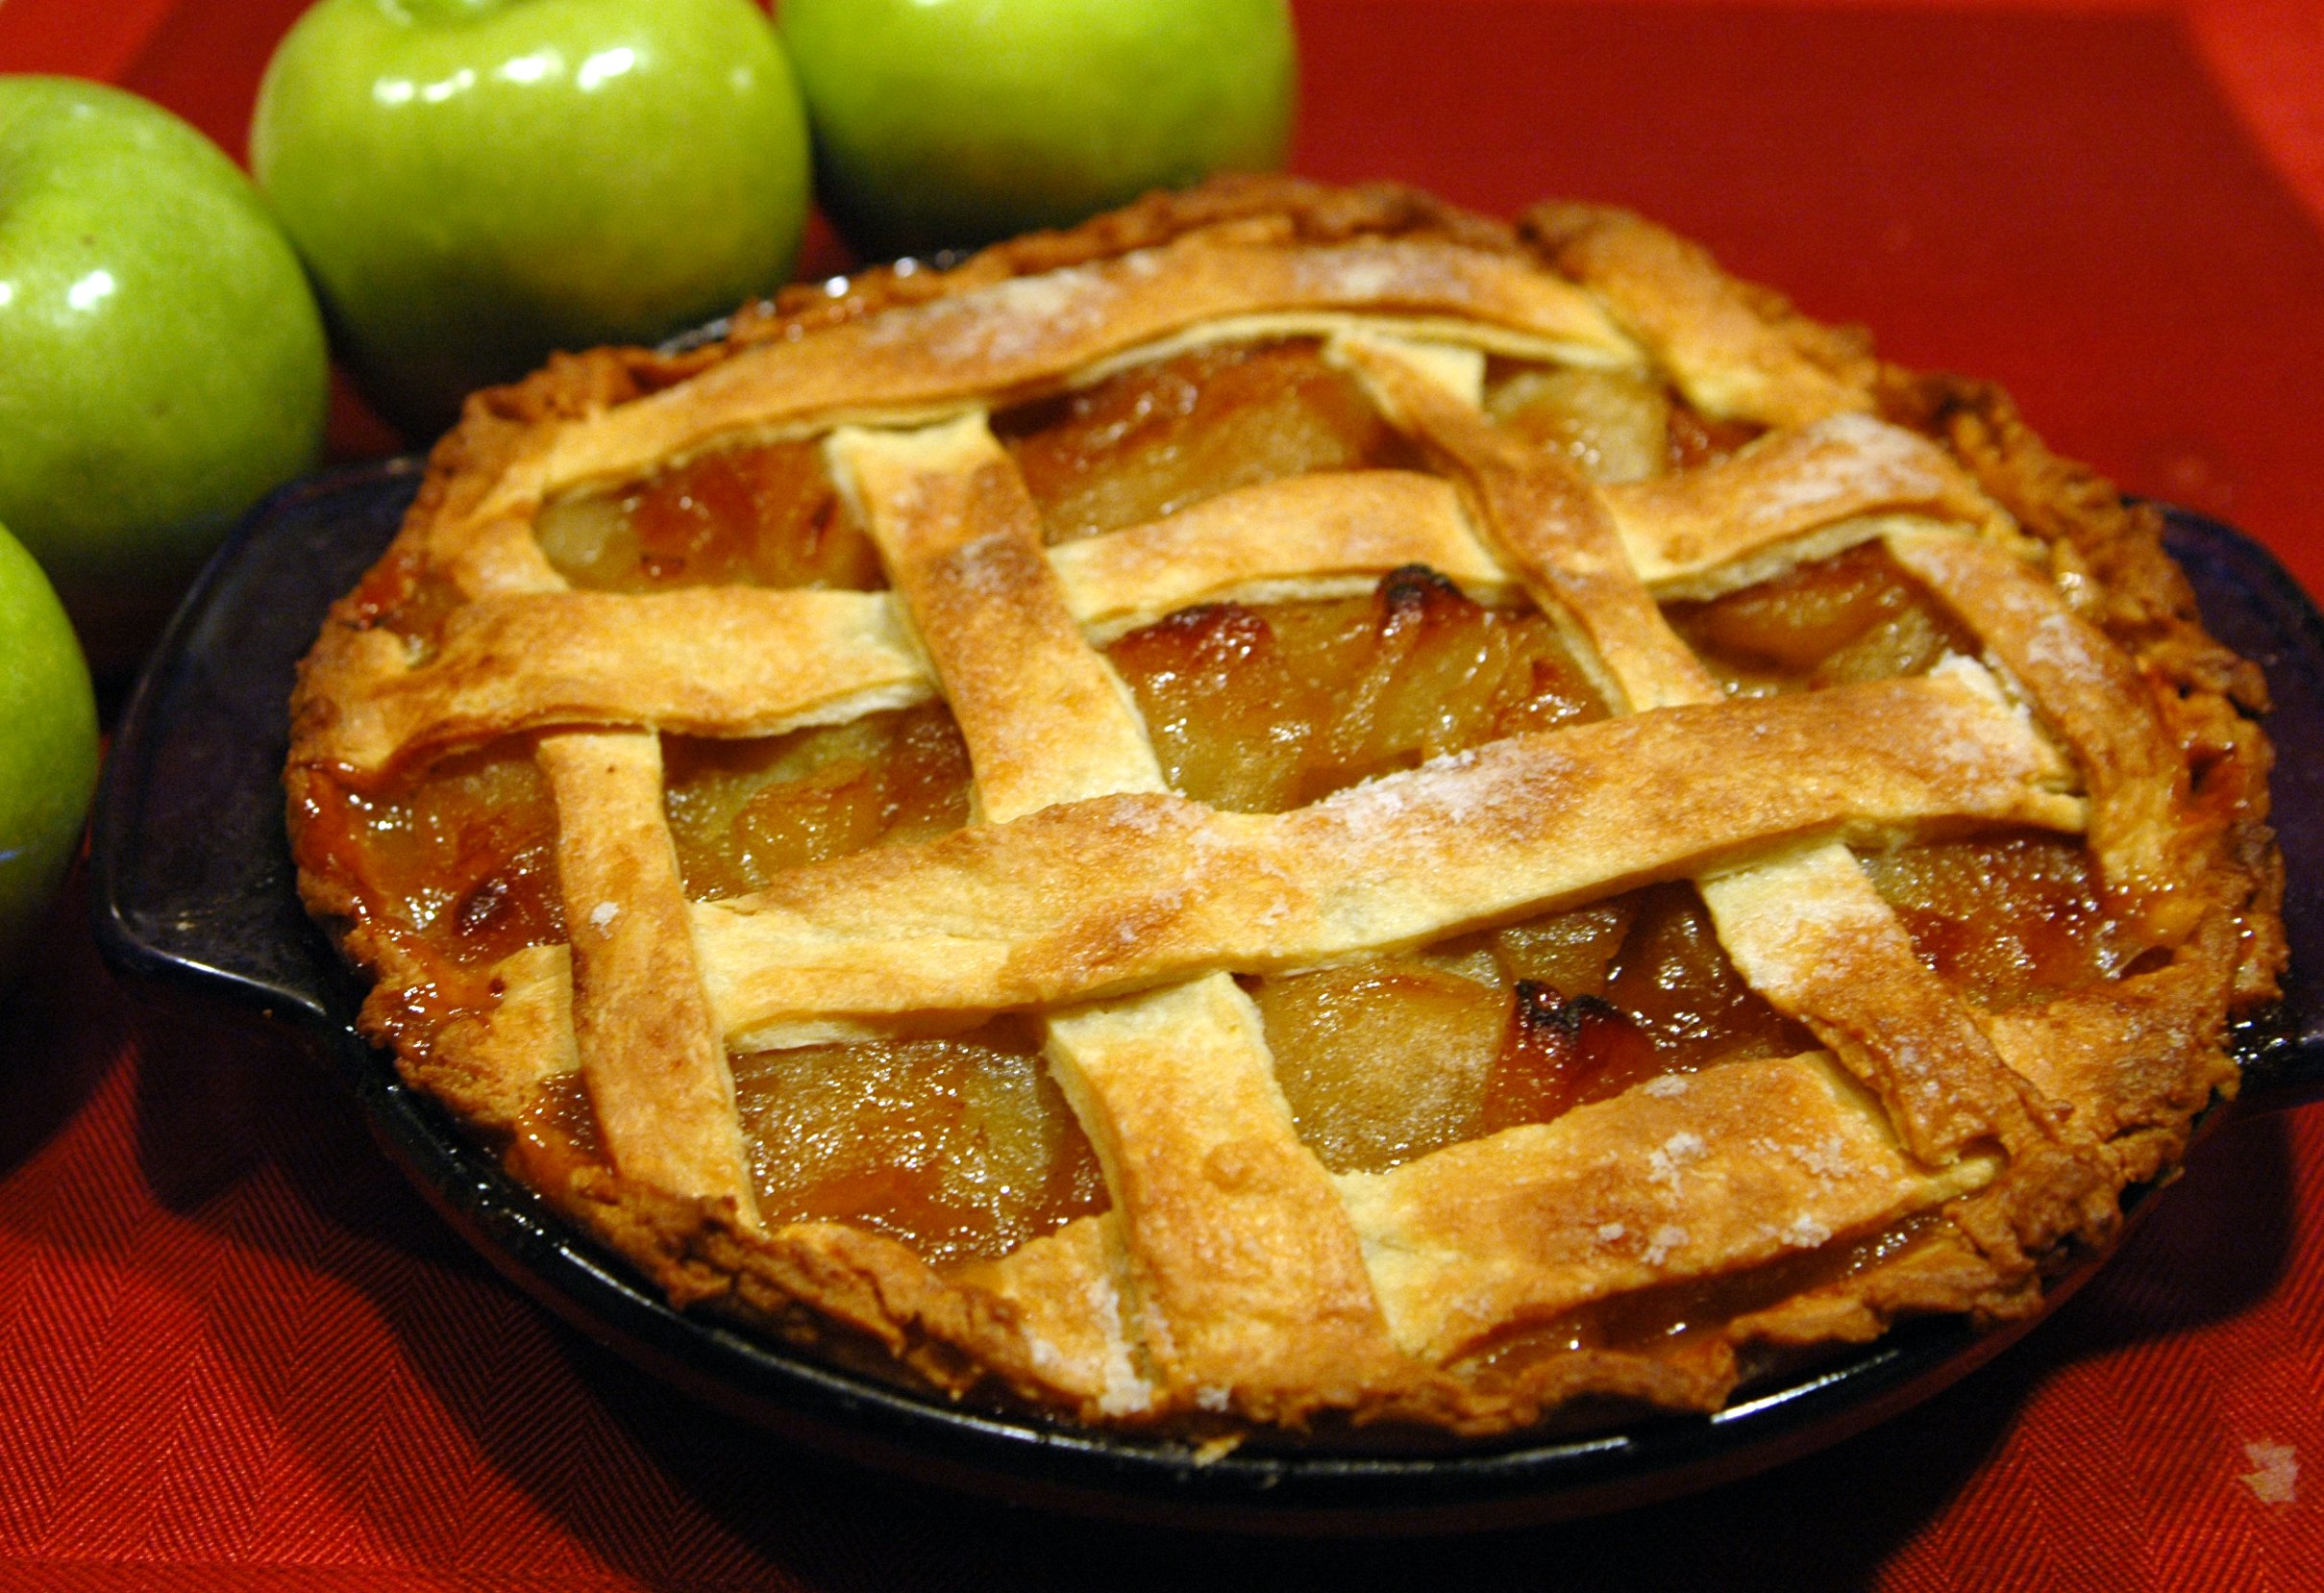 Pie Fundraiser! Buy an award winning pie AND help support the Nature Center! Fundraiser ends November 9th.